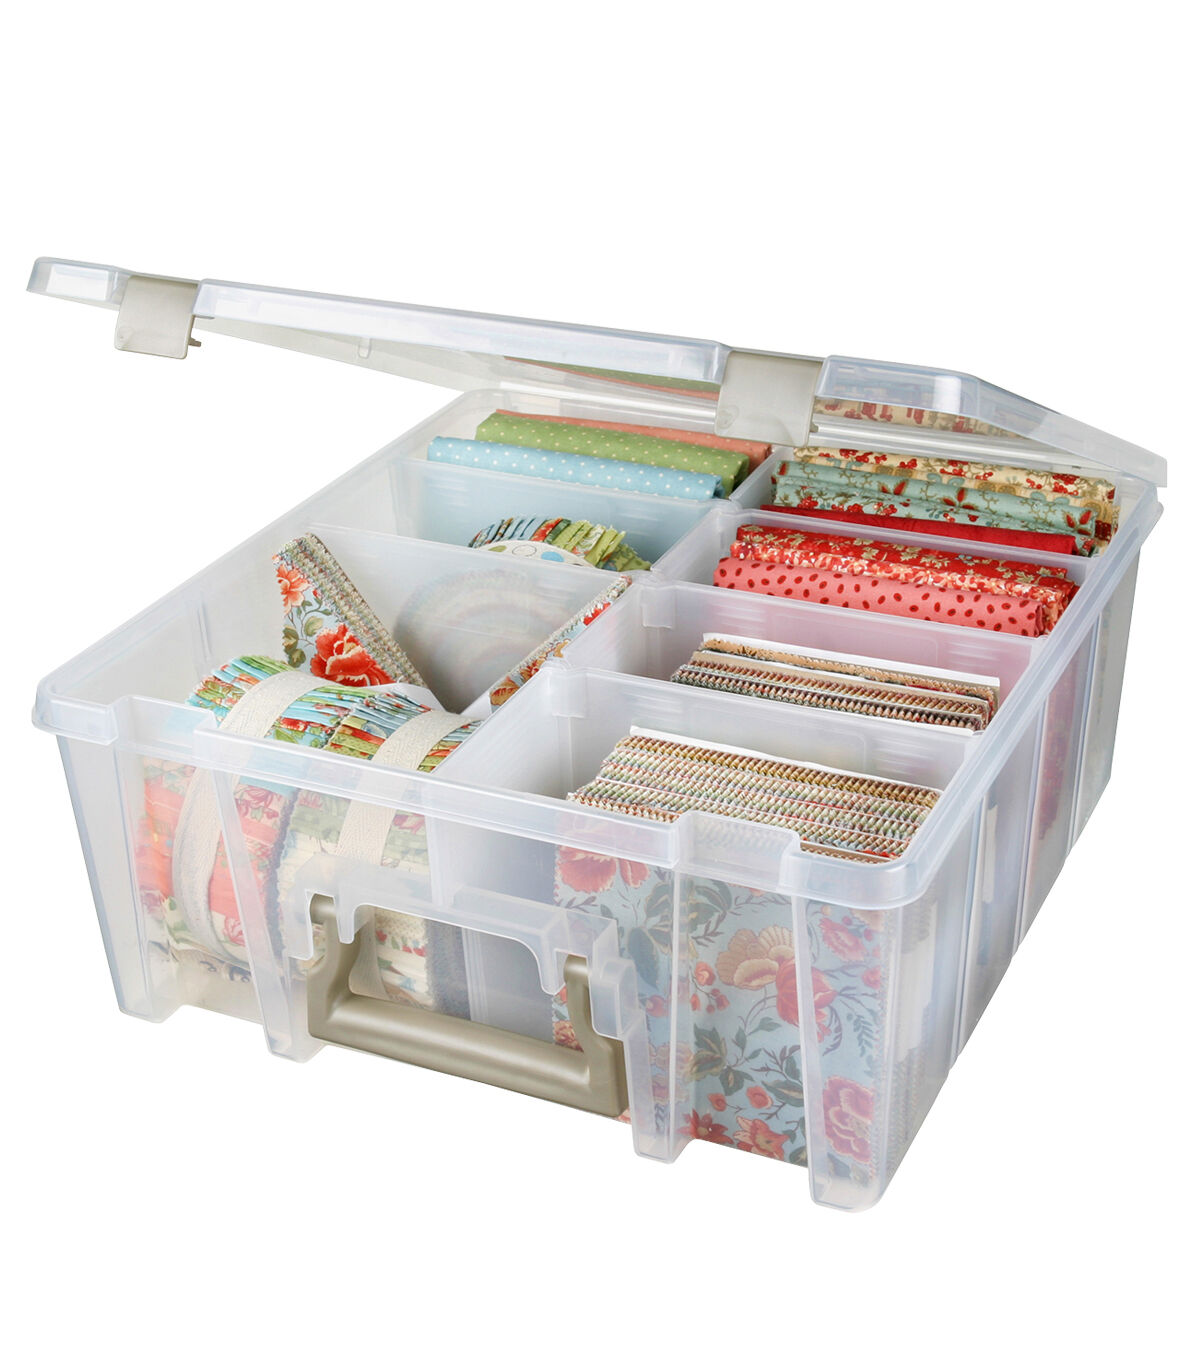 ArtBin Double Deep Box with Removable Dividers  sc 1 st  Joann & Plastic Storage - Plastic Drawers Bins and Boxes | JOANN